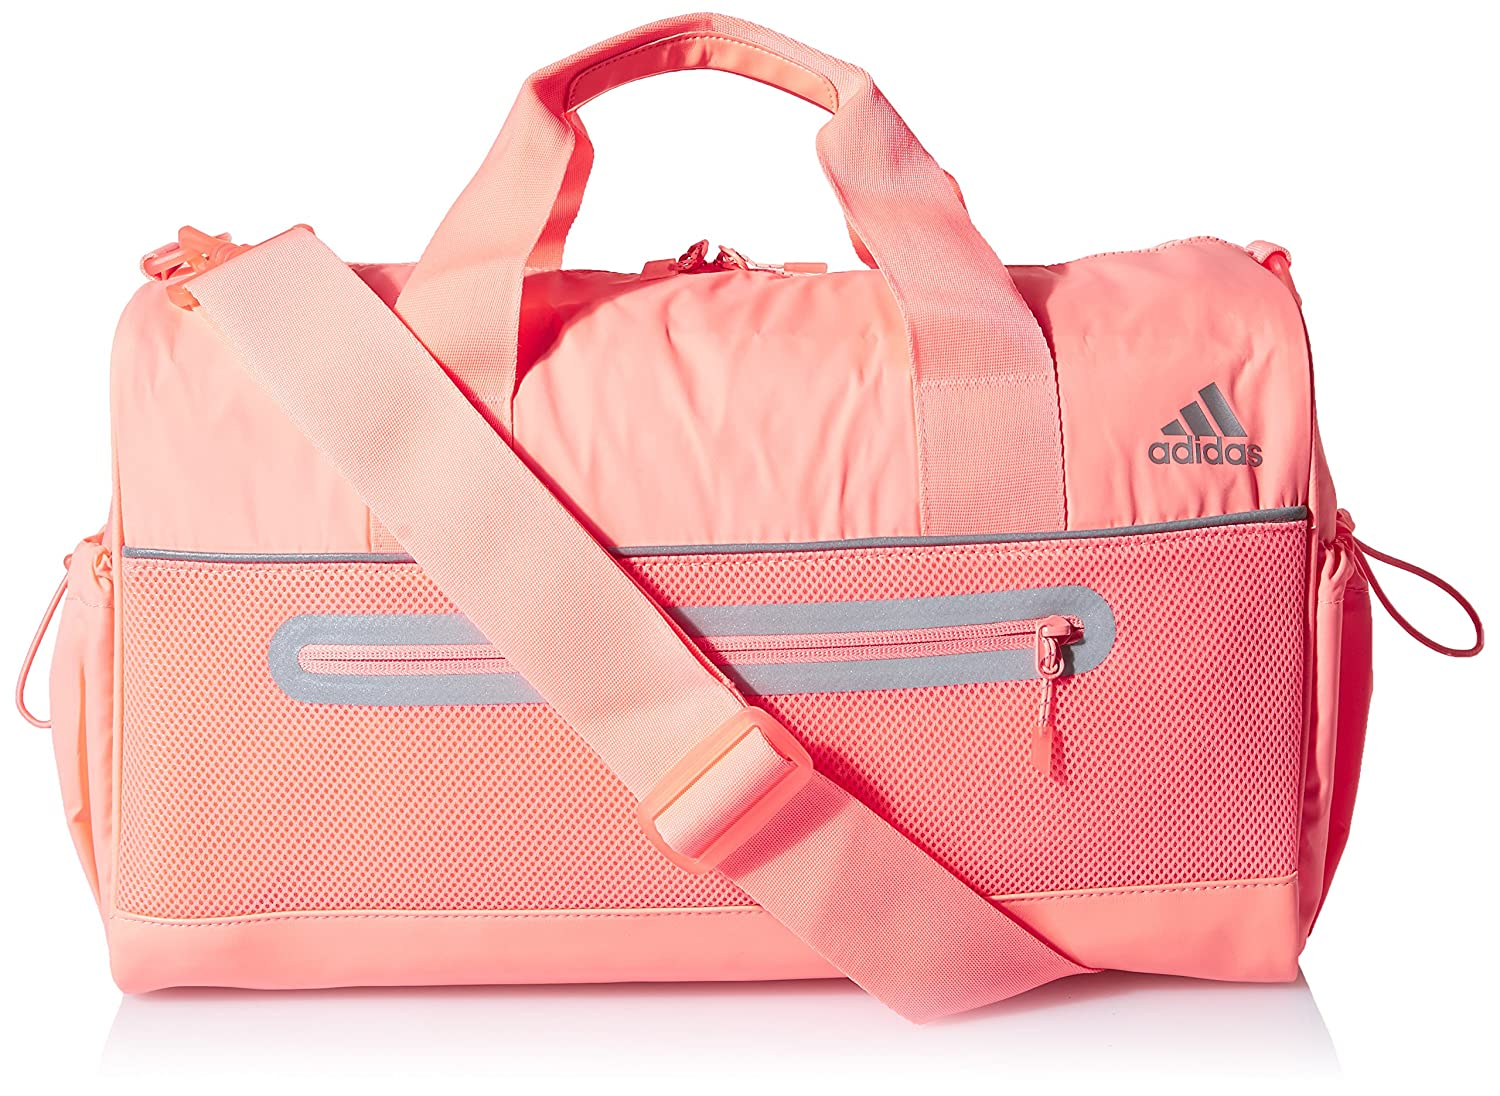 015a27fb7f6a adidas Women s Gym Bag Team